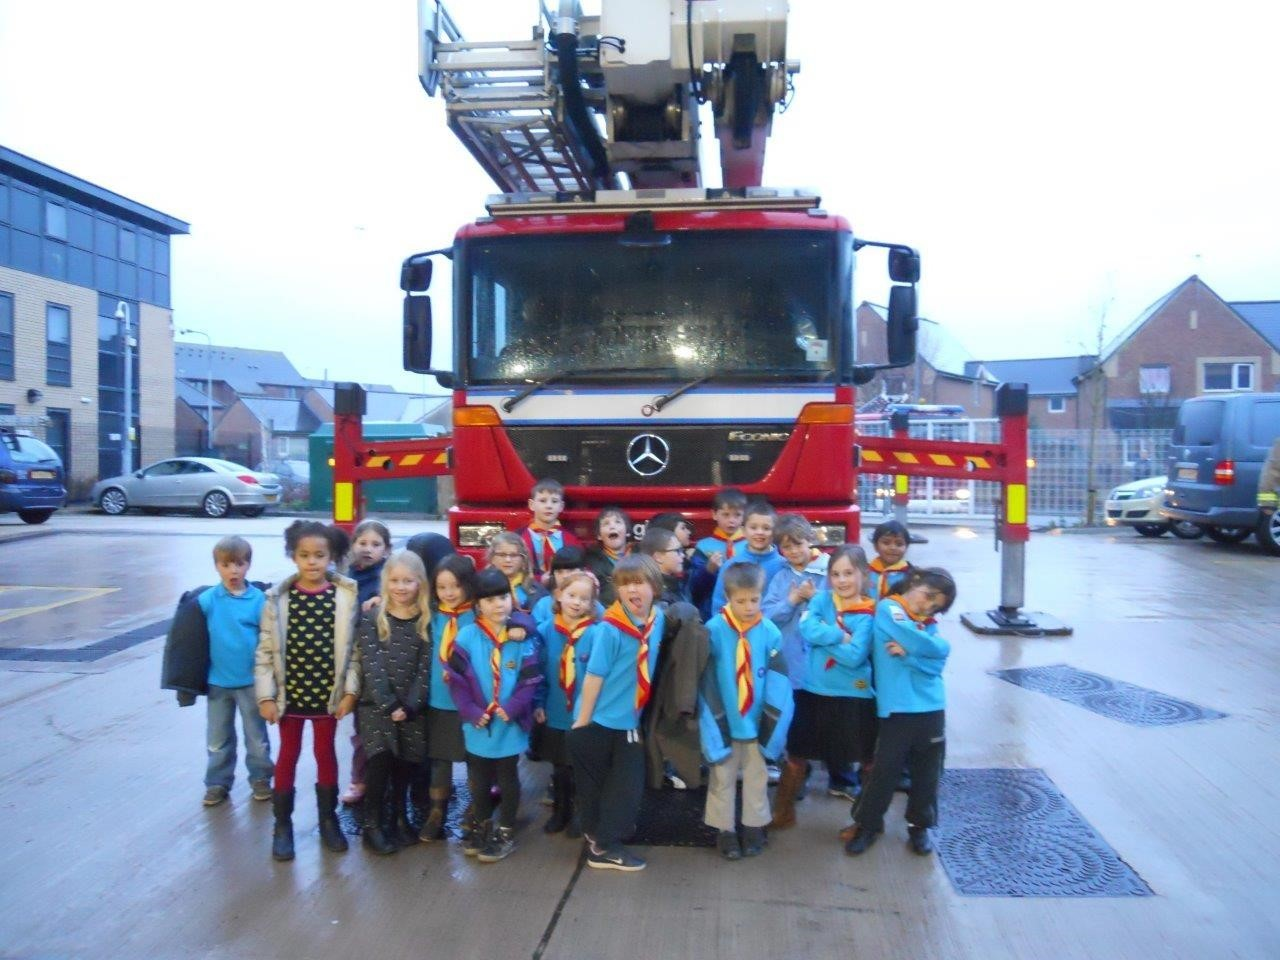 TOUR: Members of 1st Penarth Beaver Scouts Colony at the central fire station in Cardiff